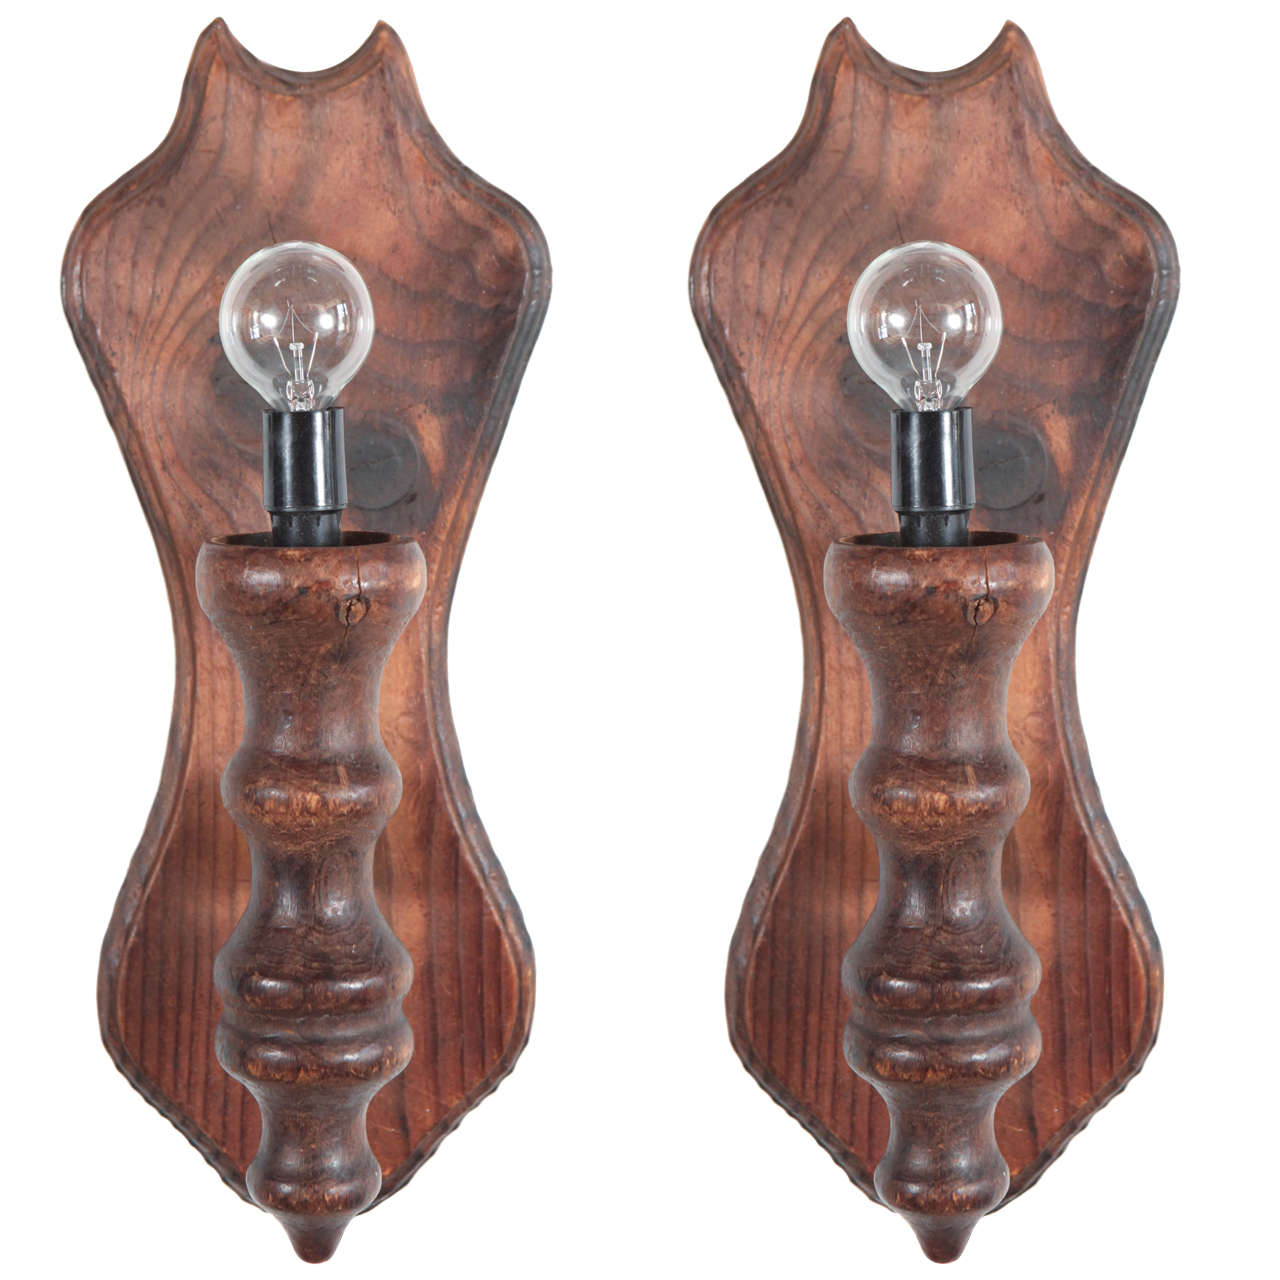 Rustic Wooden Wall Sconces : Rustic Carved Wooden Wall Sconces at 1stdibs